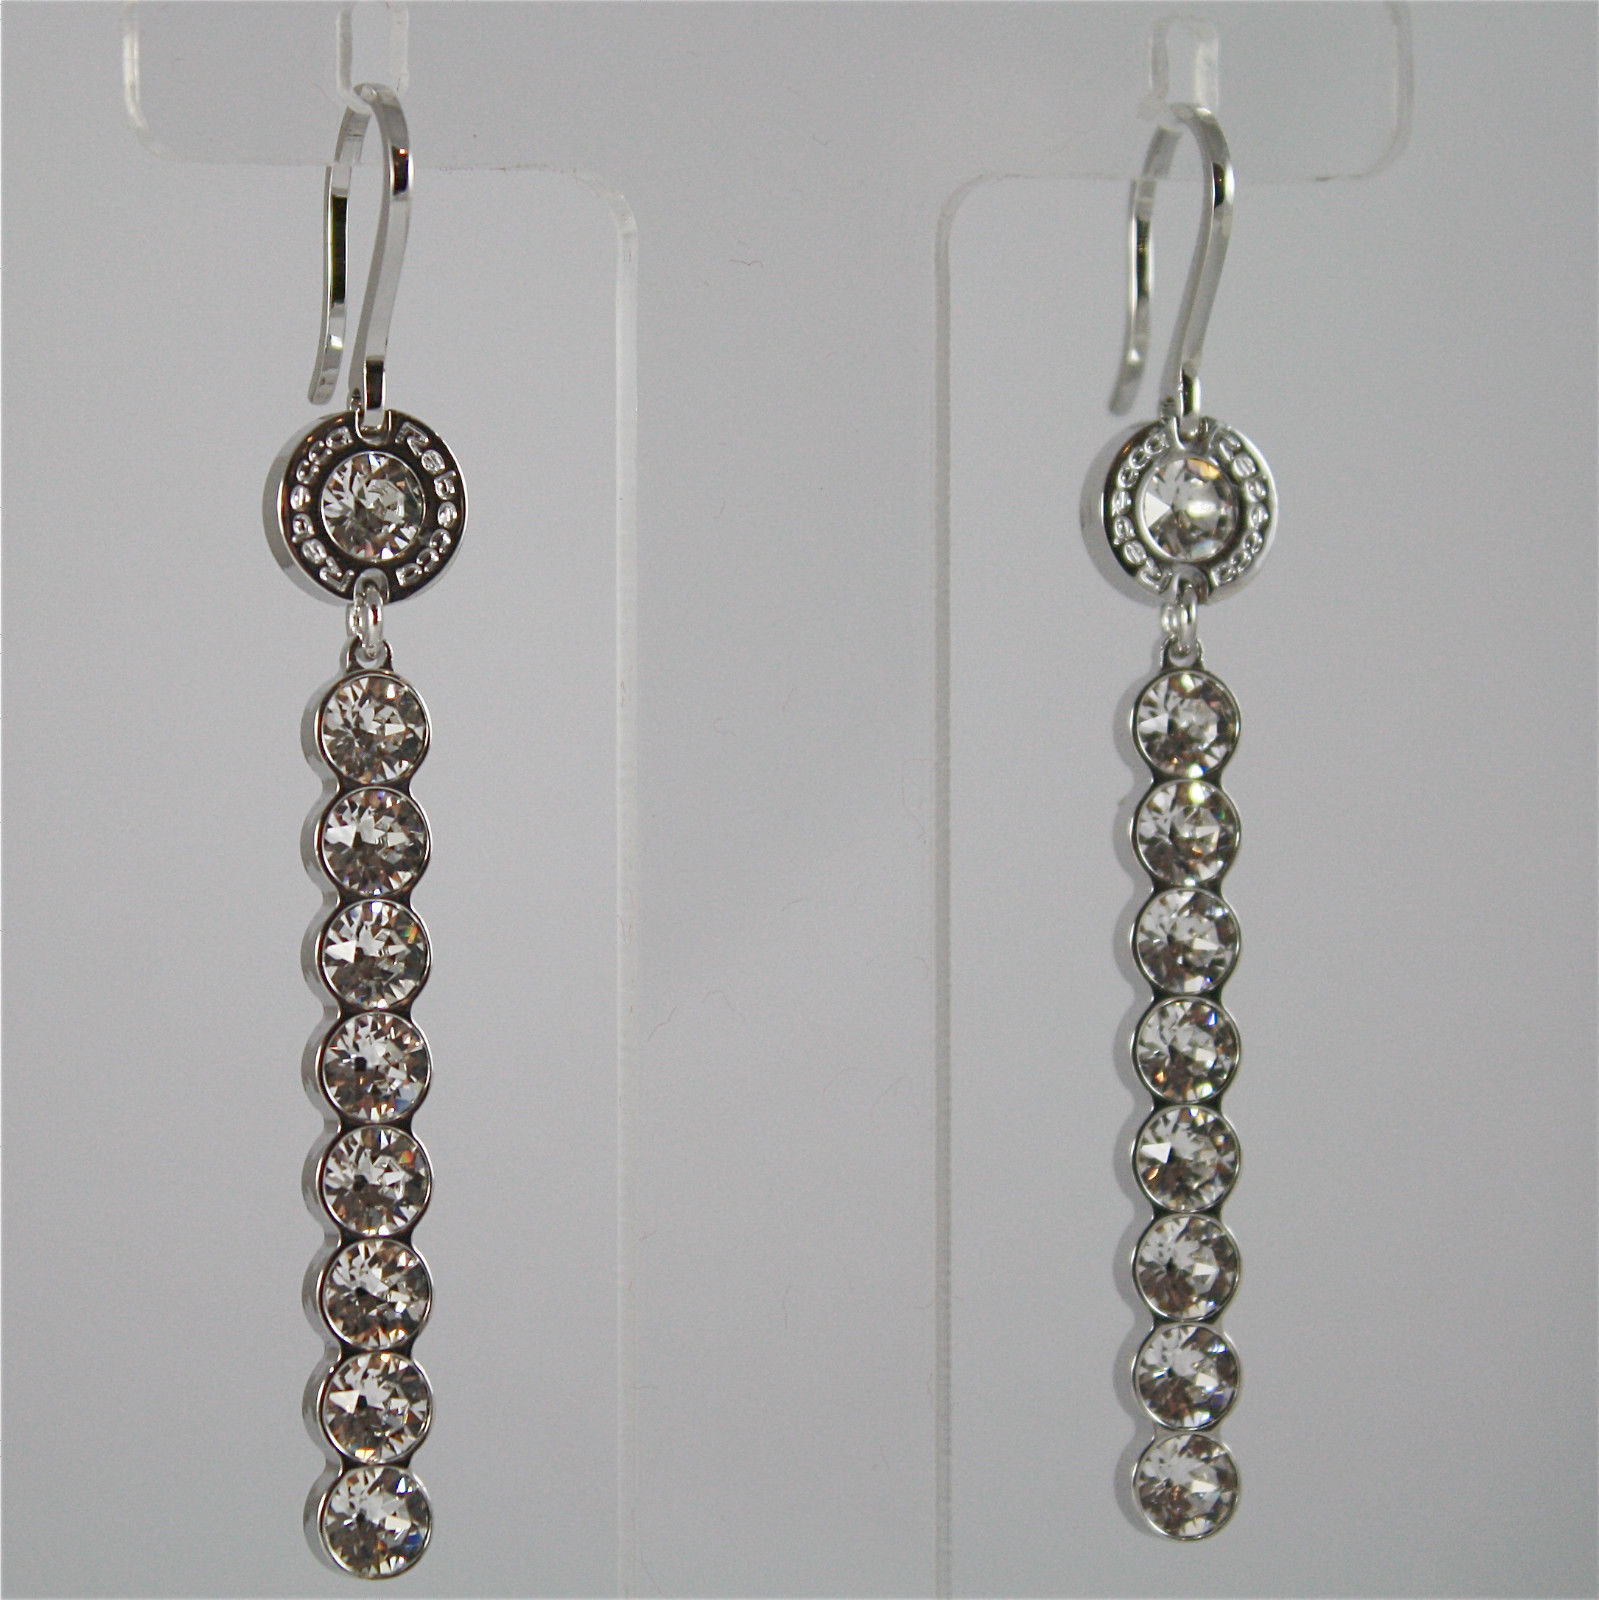 WHITE GOLD PLATED BRONZE REBECCA EARRINGS PALM BEACH BPBORP28 MADE IN ITALY 2.4